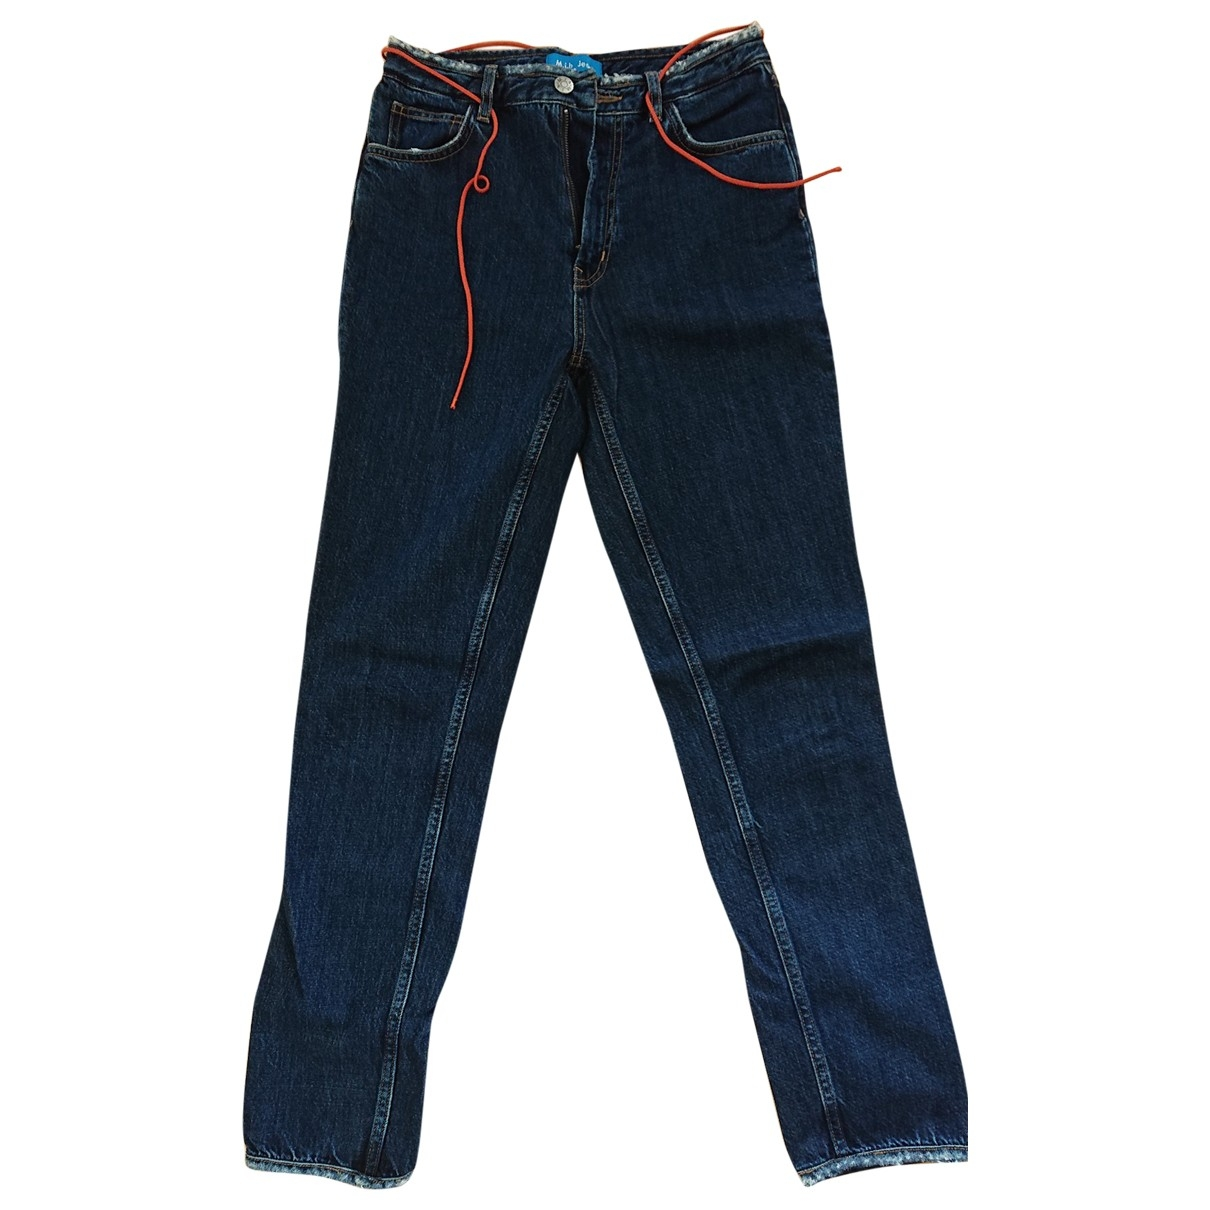 Mih Jeans \N Blue Cotton - elasthane Jeans for Women 28 US